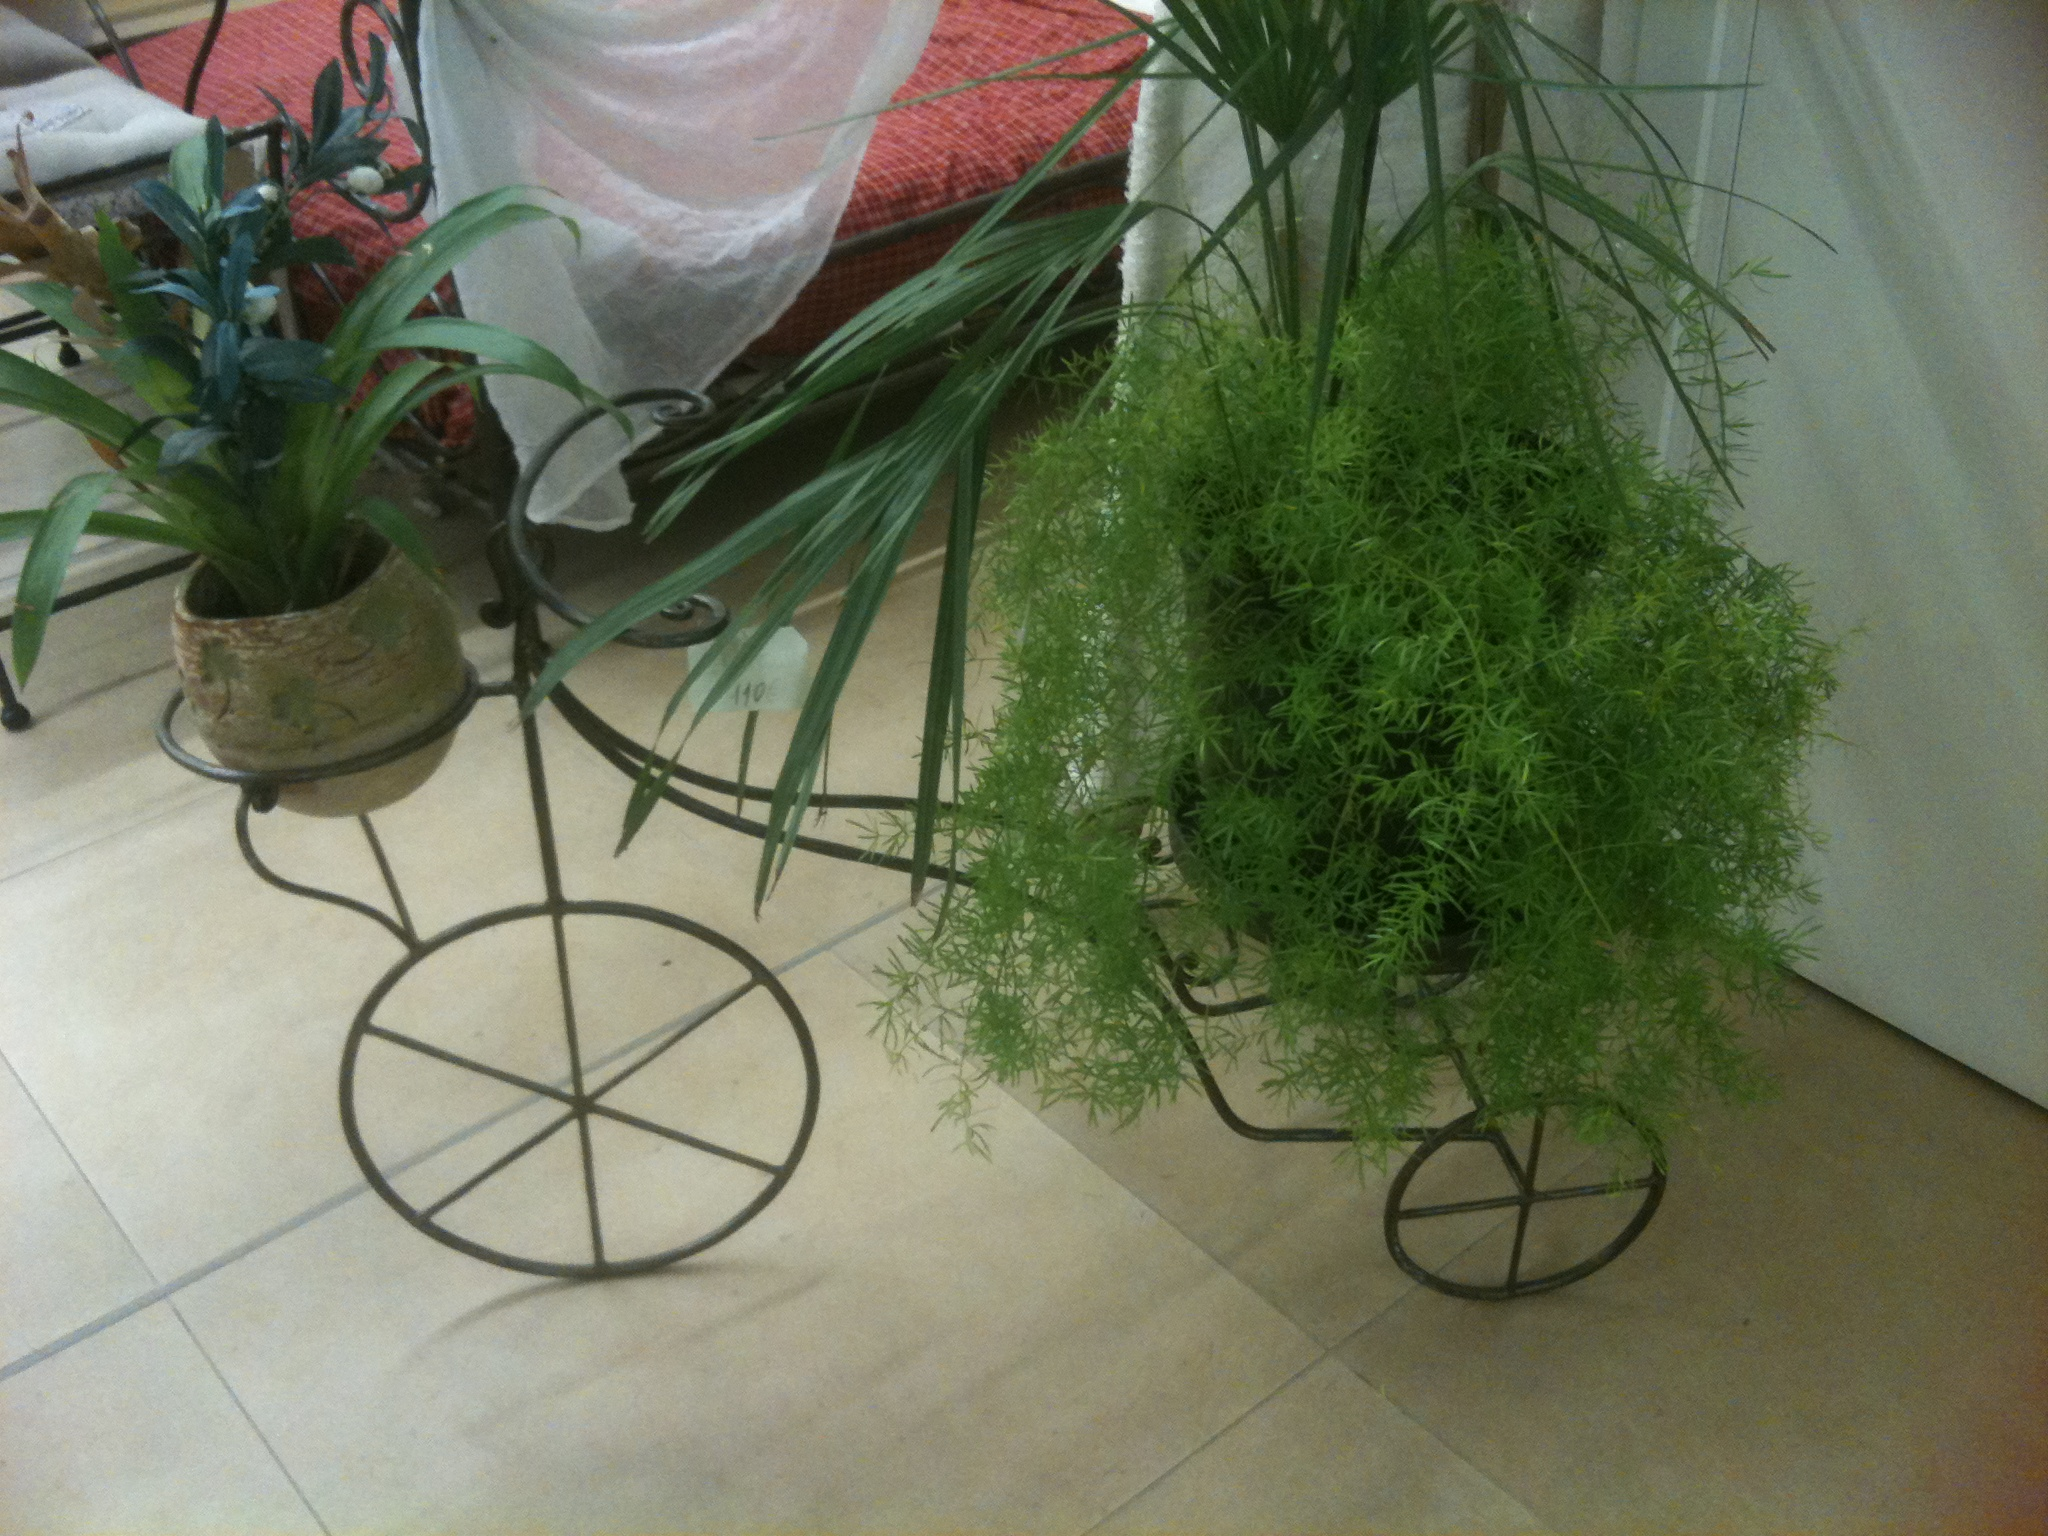 porte plante tricycle petit mod le portes plantes mobilier acier fer bosi la forge artistique. Black Bedroom Furniture Sets. Home Design Ideas